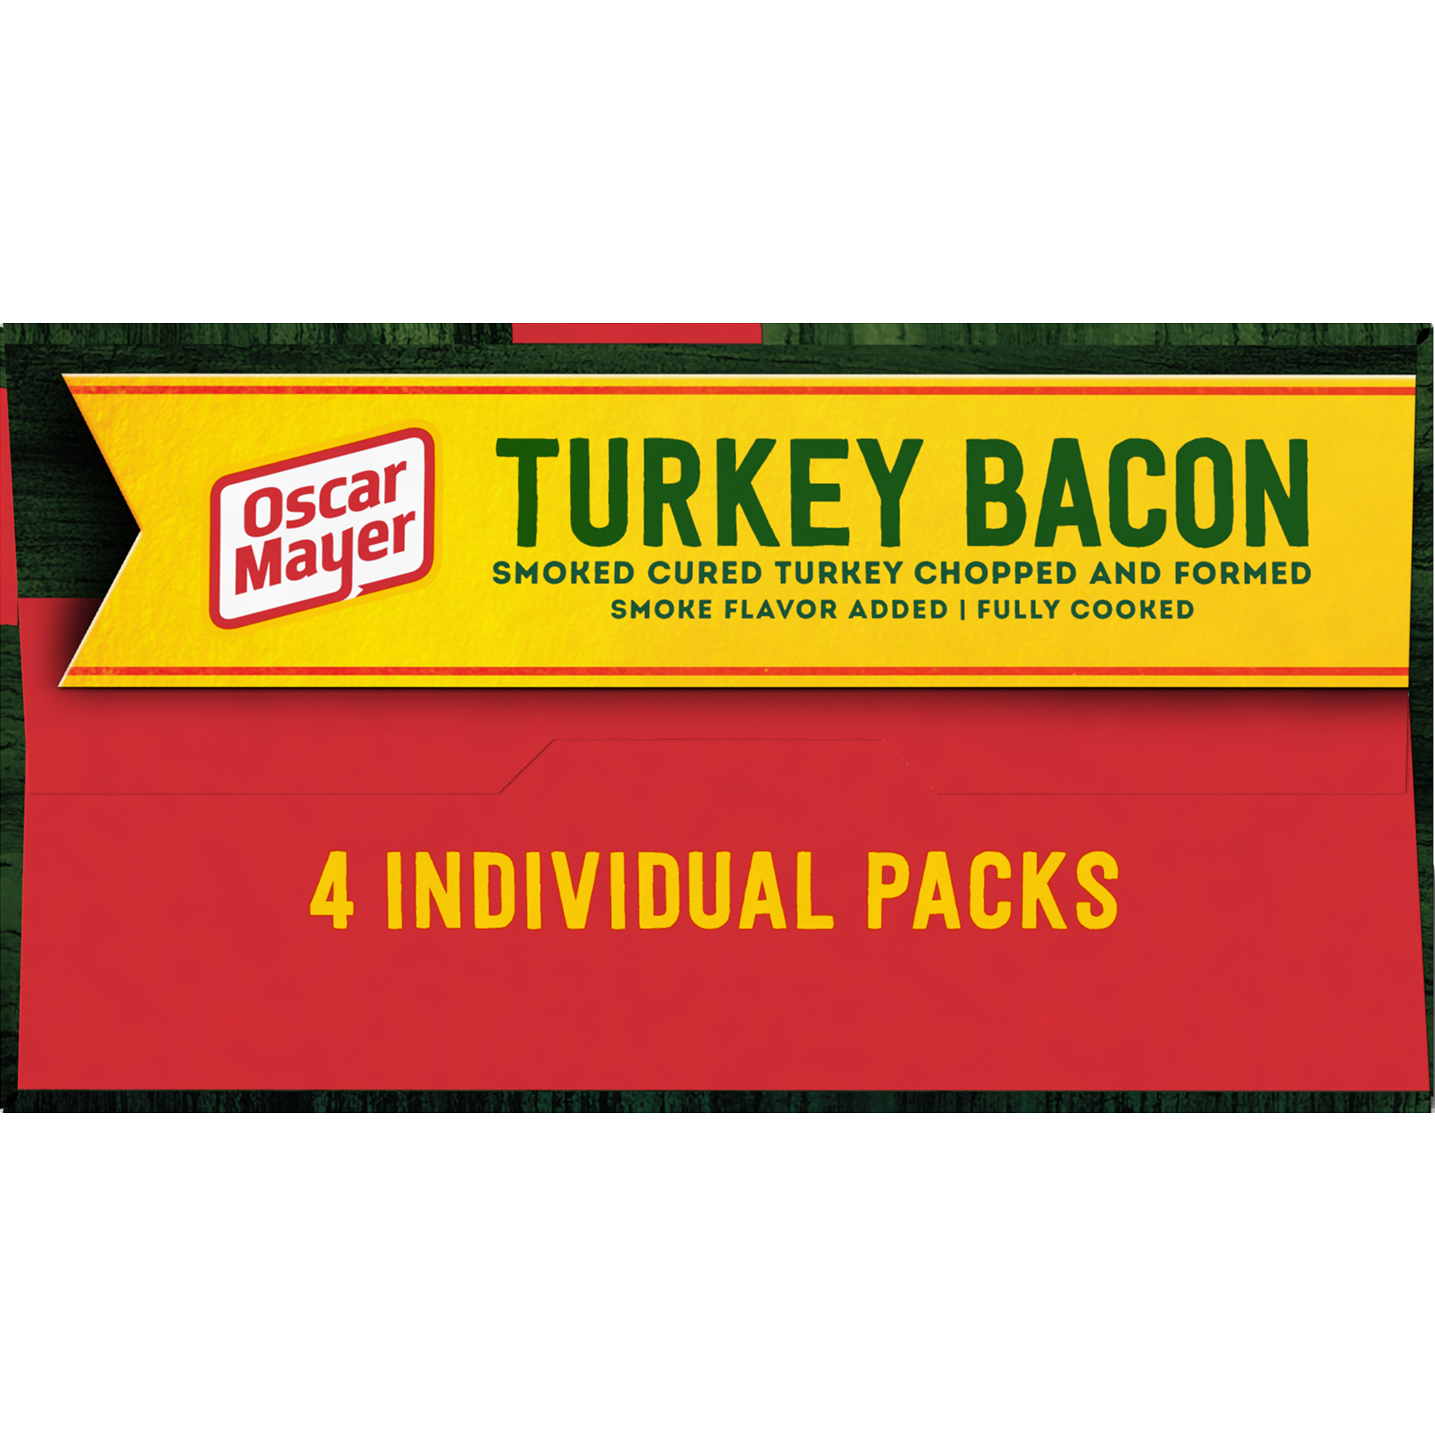 Oscar Mayer Turkey Bacon 48 oz Box